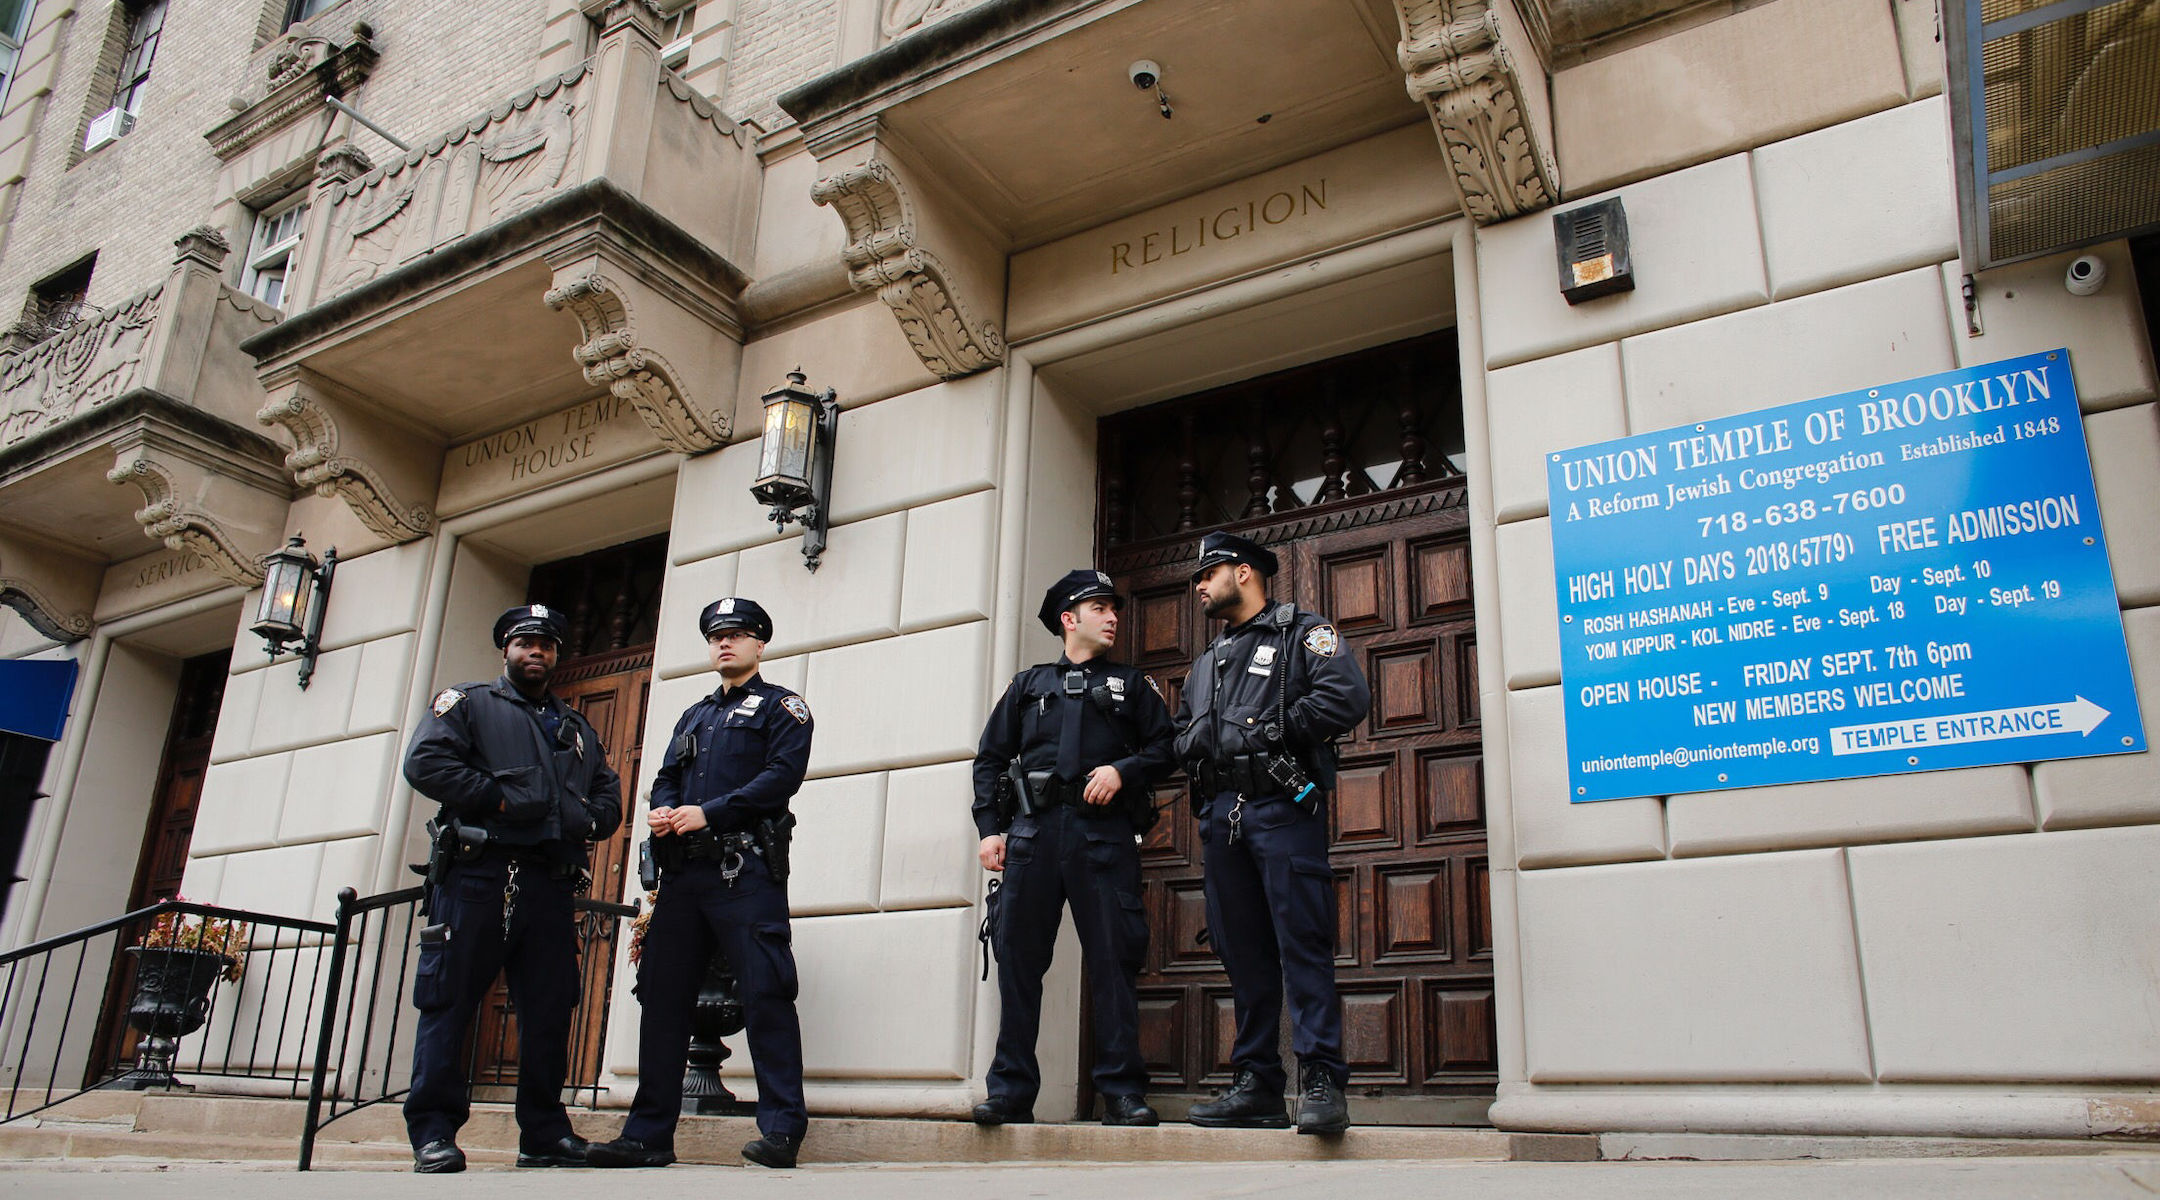 New York police officers stand guard at the door of the Union Temple of Brooklyn after it was vandalized with graffiti, Nov. 2, 2018. (Photo/JTA-Kena Betancur-AFP via Getty Images)